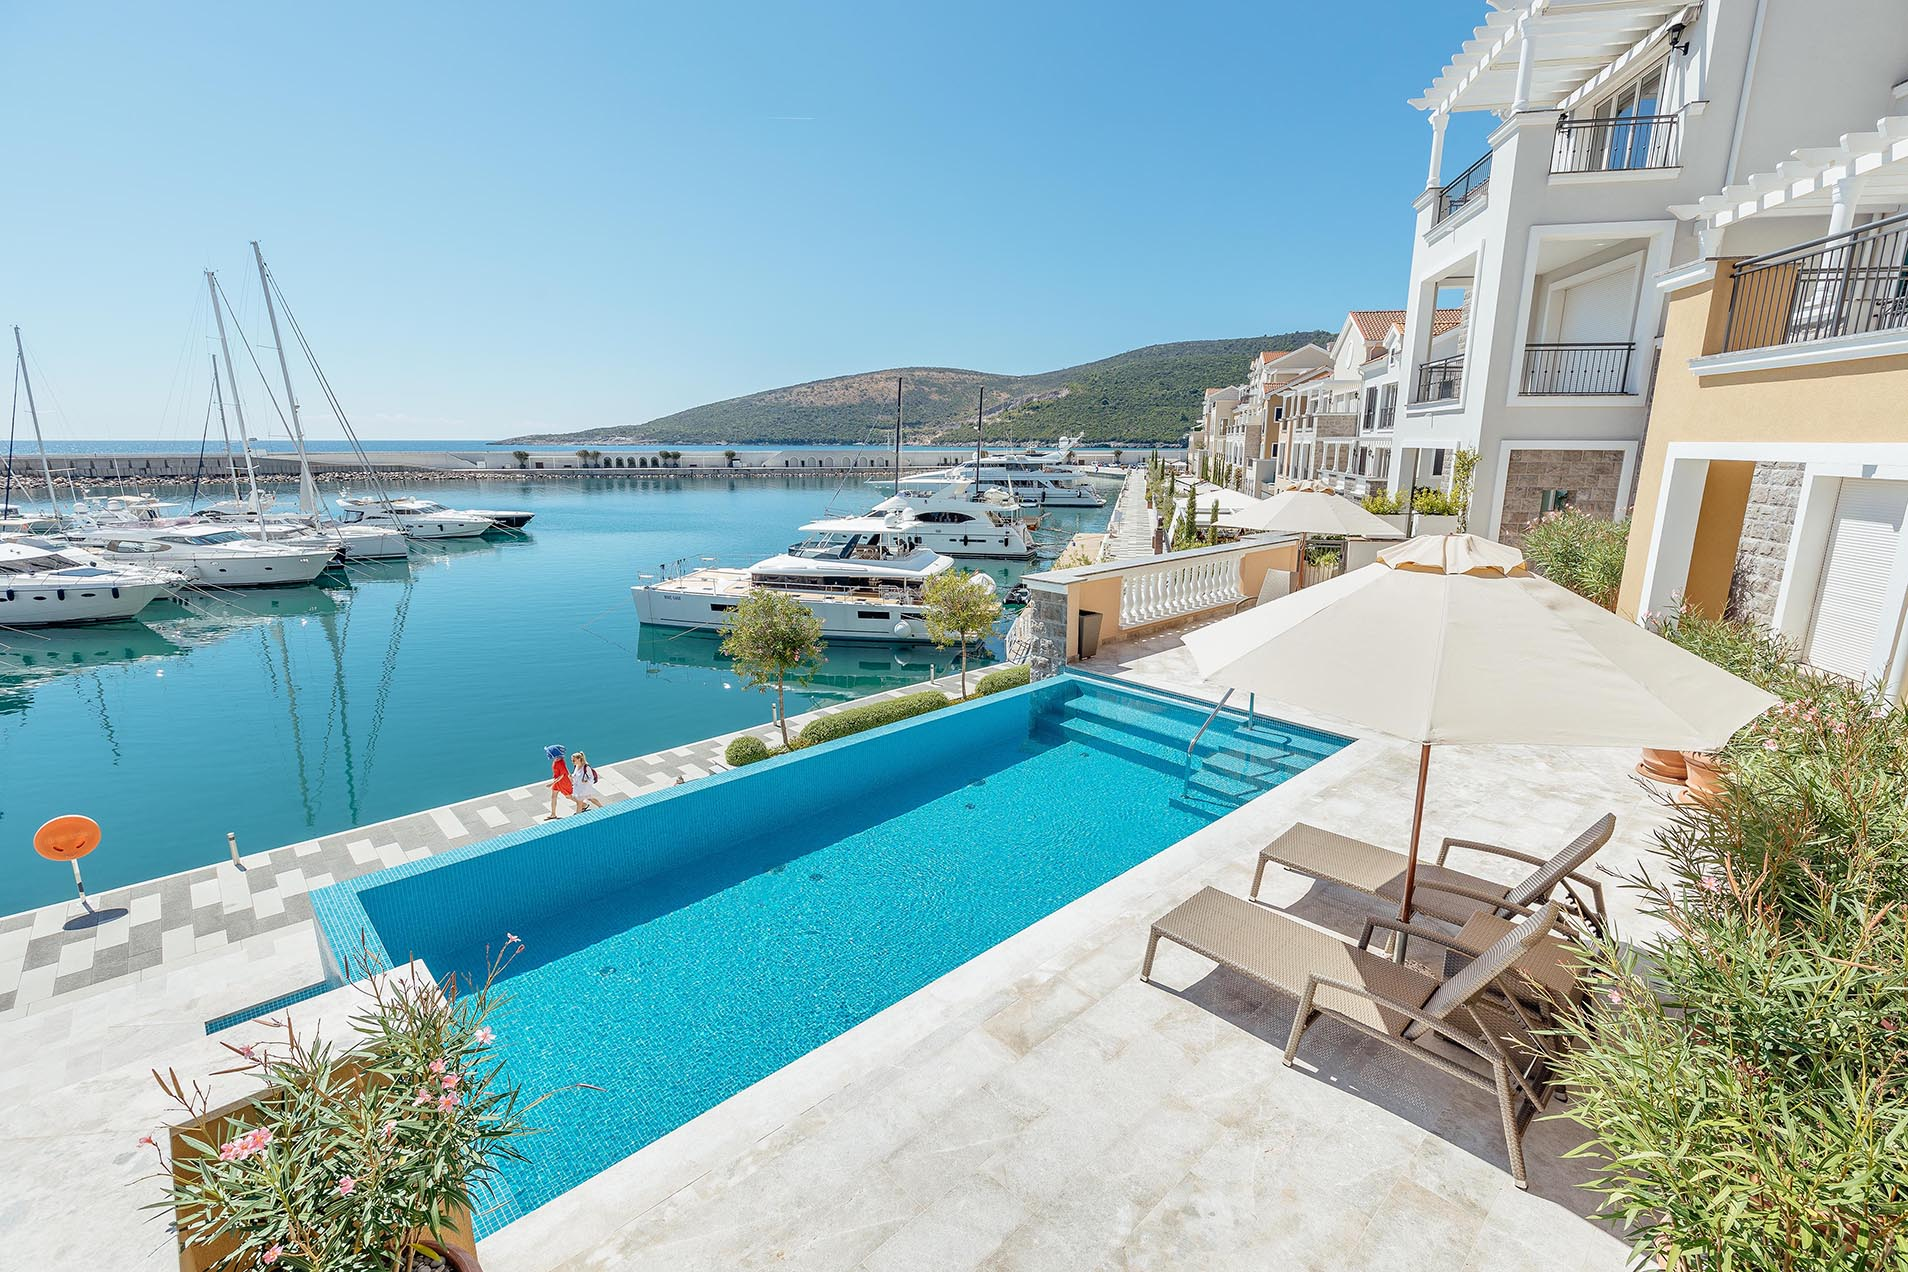 Tivat, Luštica Bay – two-bedroom seafront apartment on the promenade, next to 5 * hotel Chedi